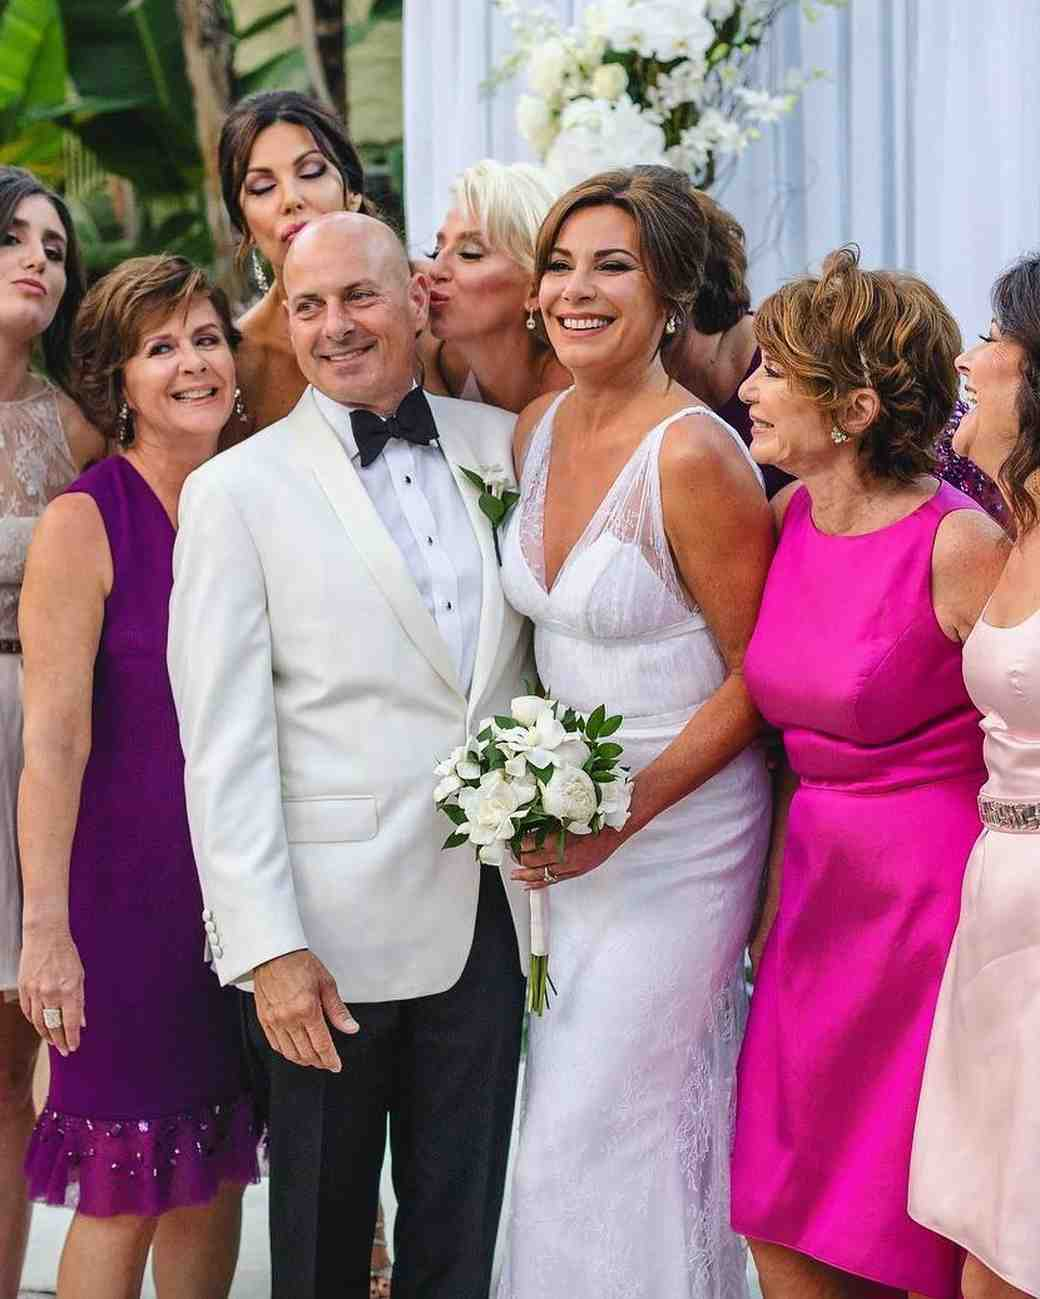 Luann D'Agostino's Palm Beach RHONY wedding